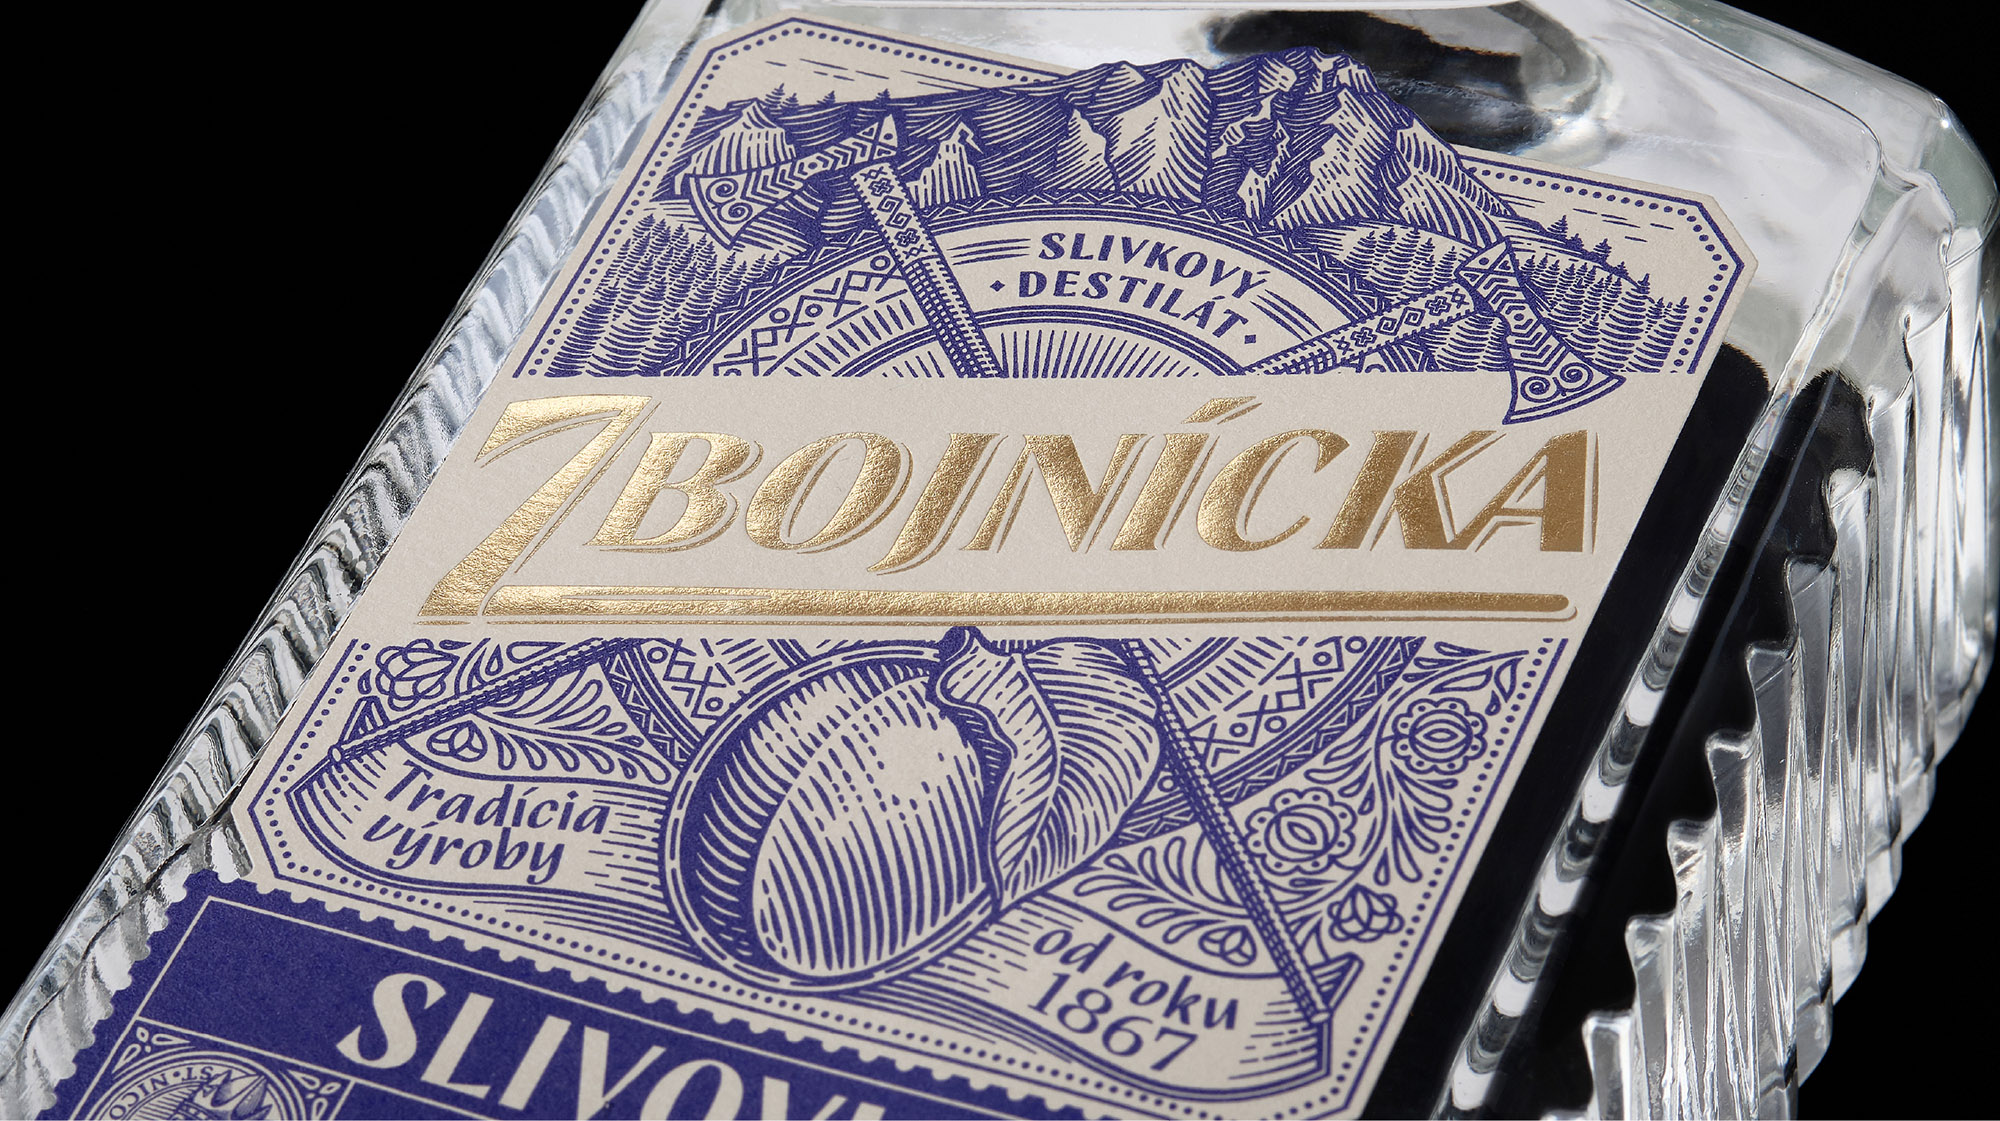 Amoth Studio Create Packaging Design for The Treasure of Zbojniks